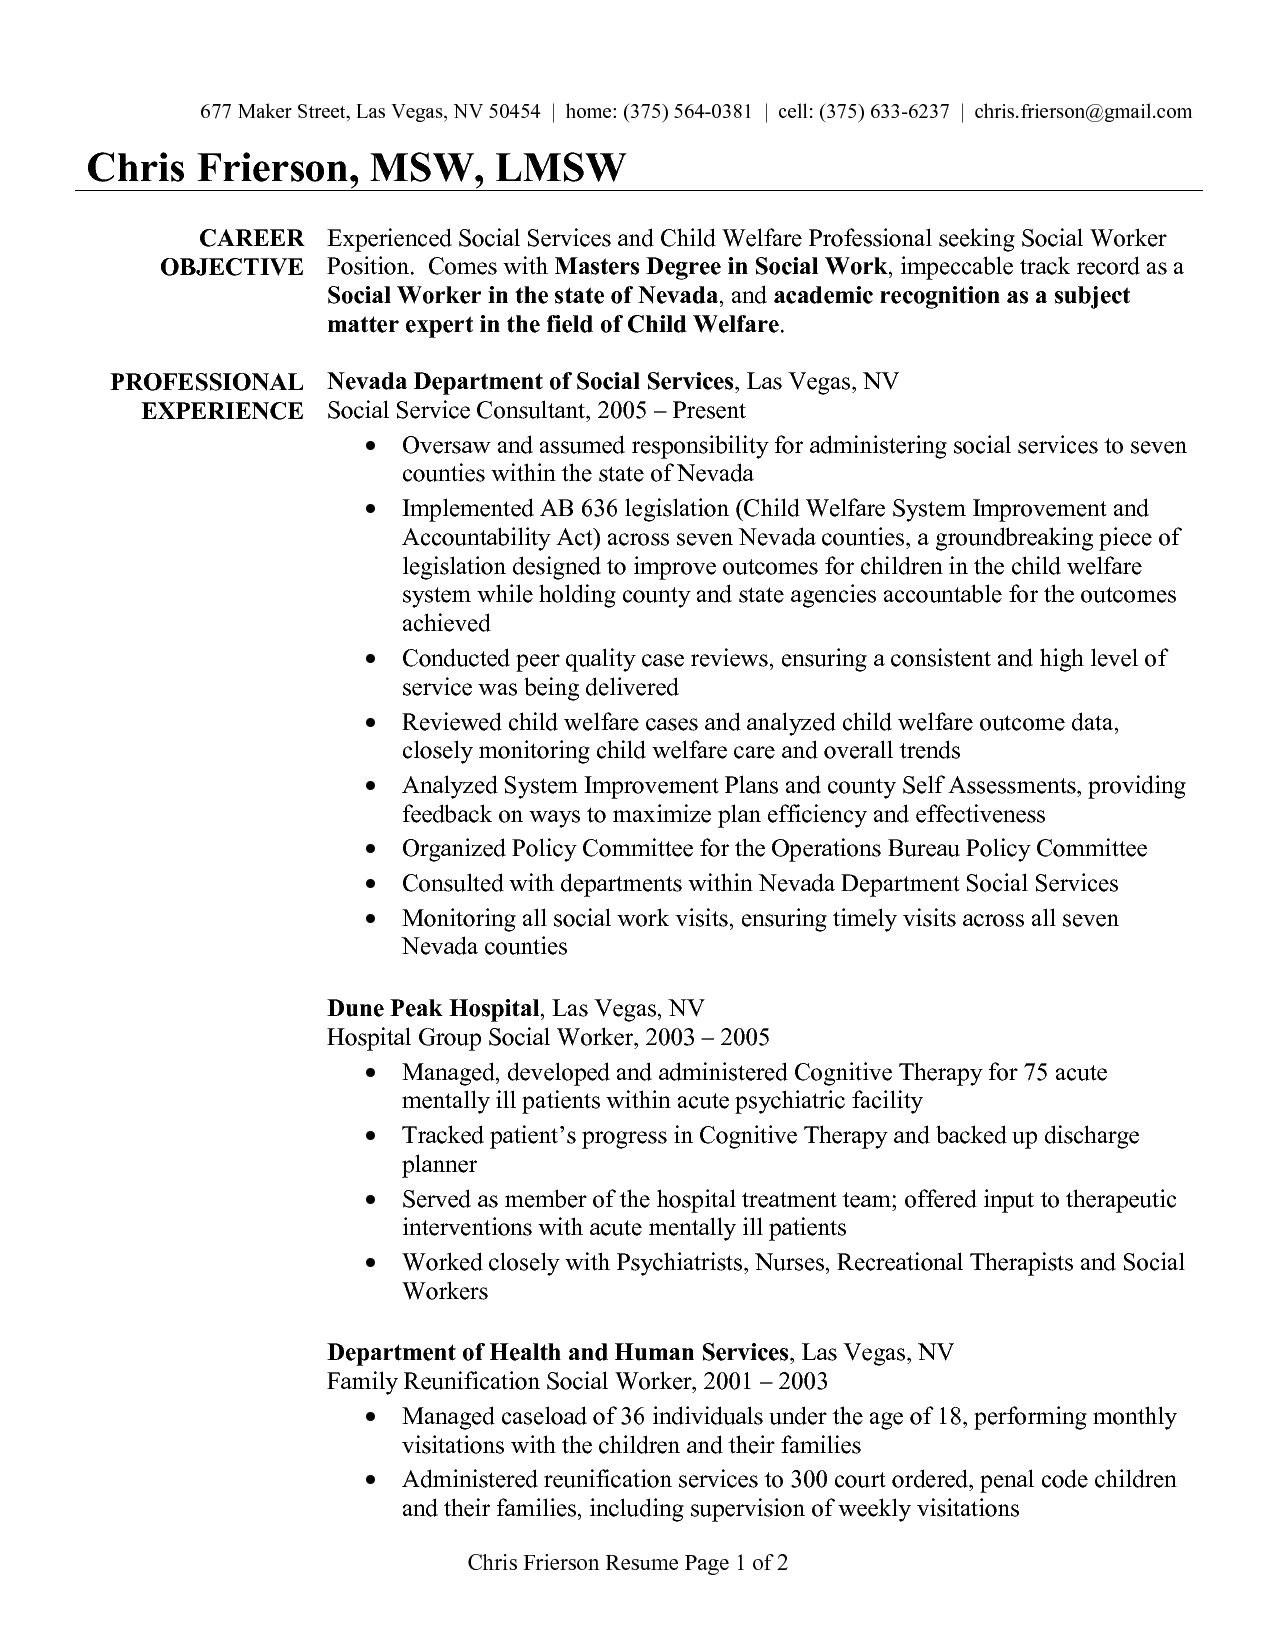 Social work resume examples social worker resume sample social work resume examples social worker resume sample madrichimfo Image collections